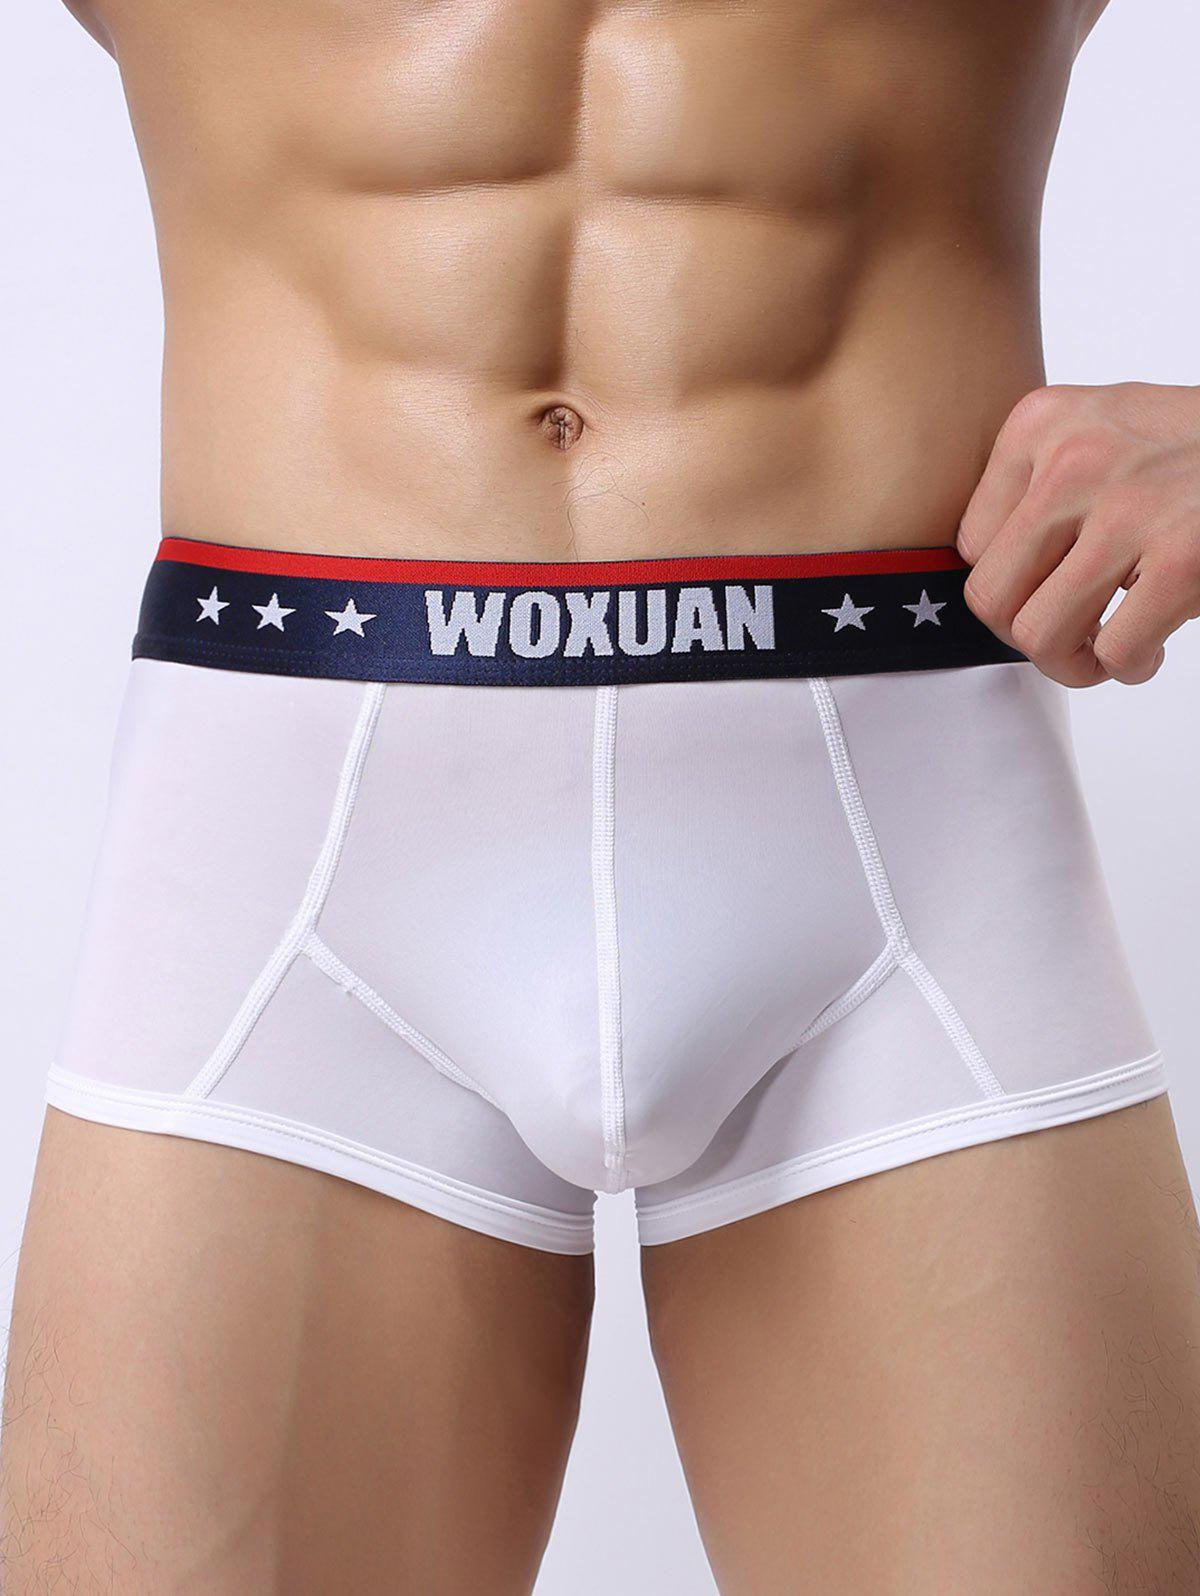 Star Printed U Convex Pouch Trunks - WHITE S